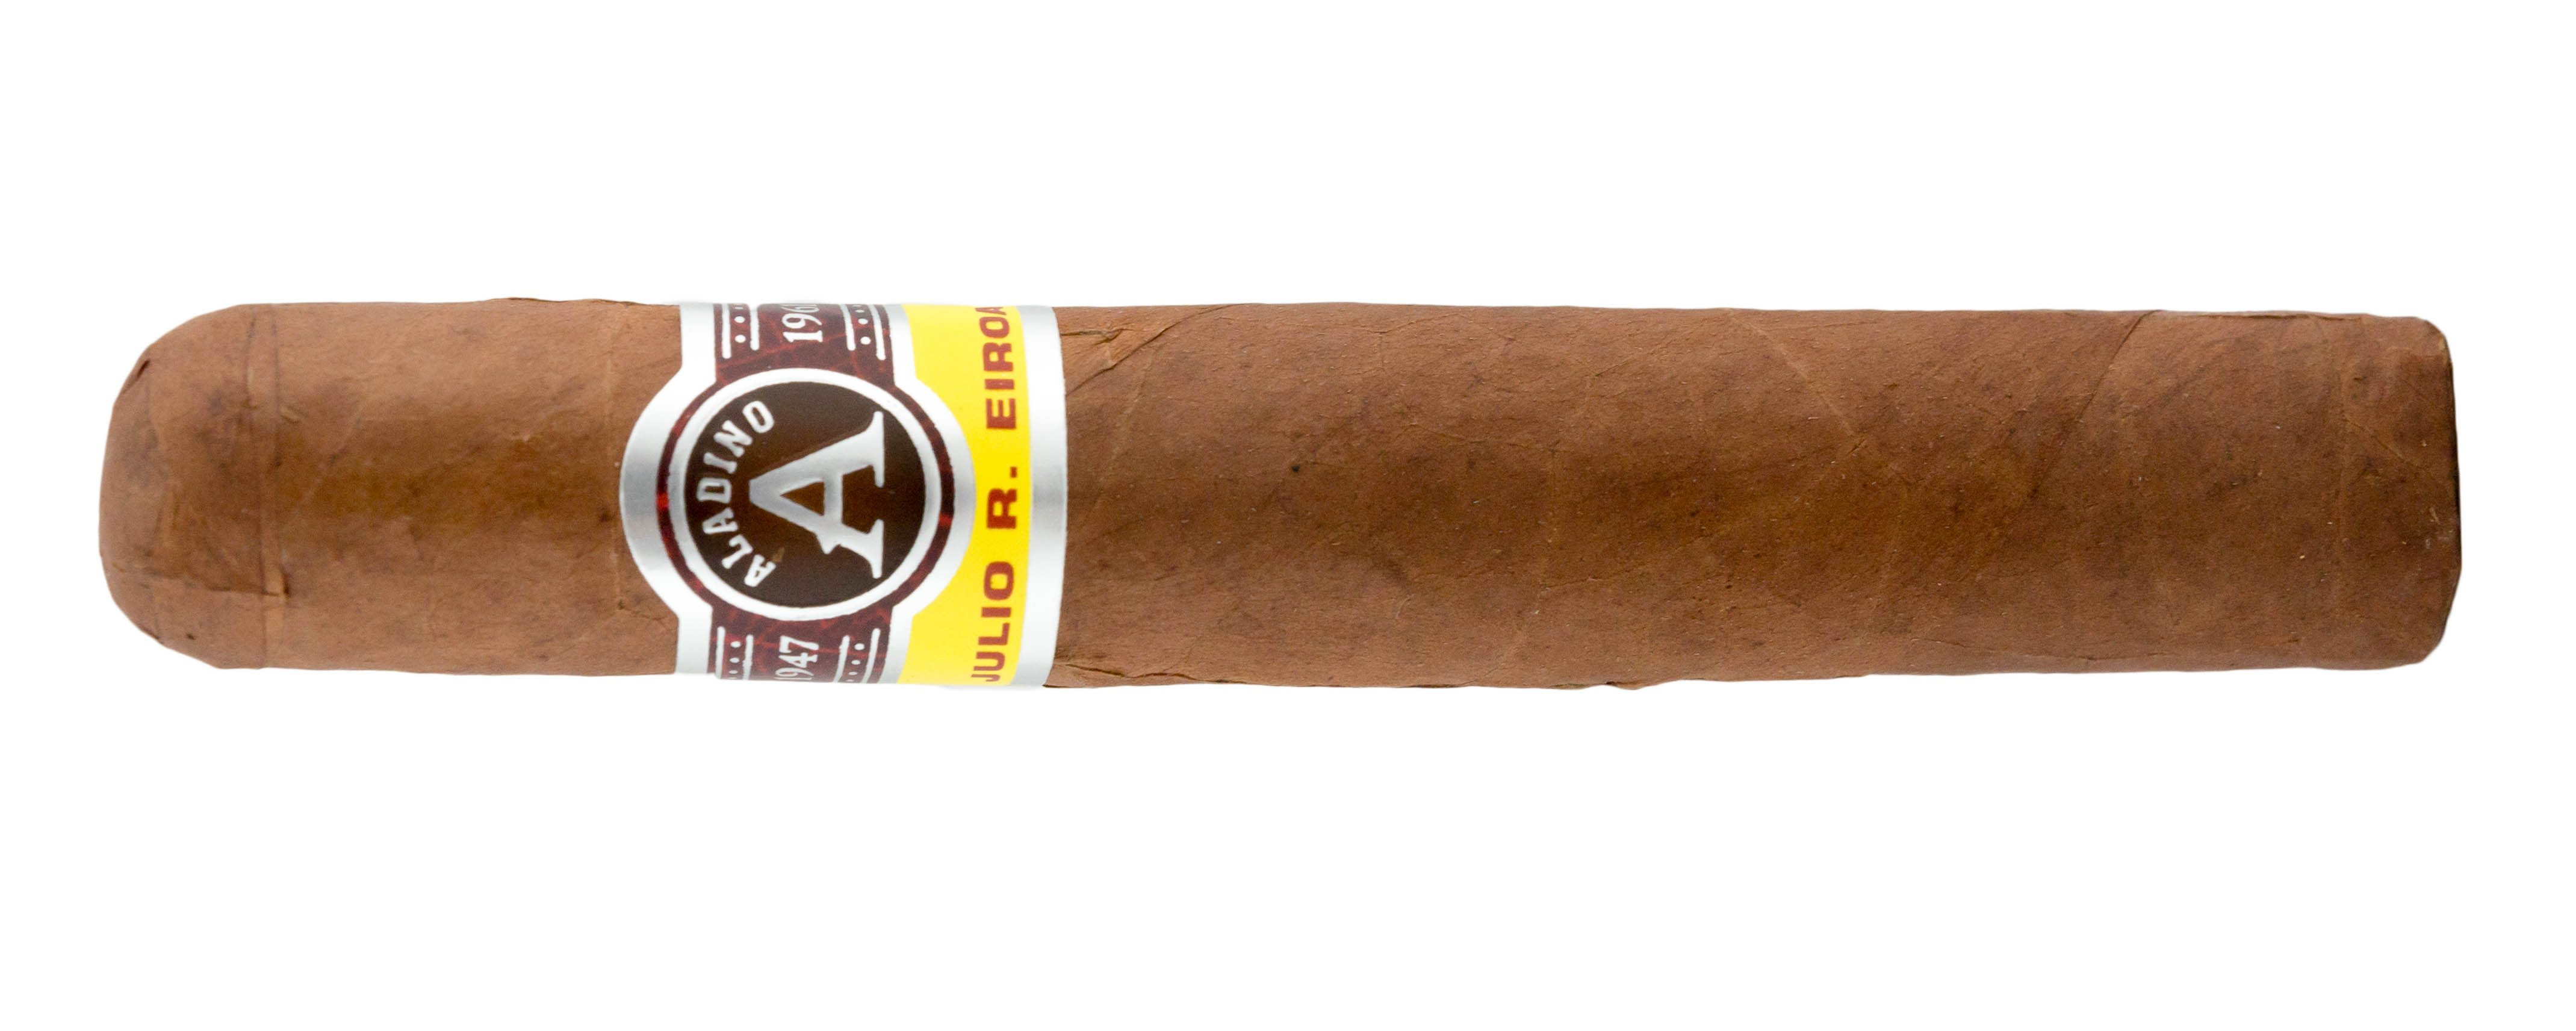 Blind Cigar Review: JRE | Aladino Robusto